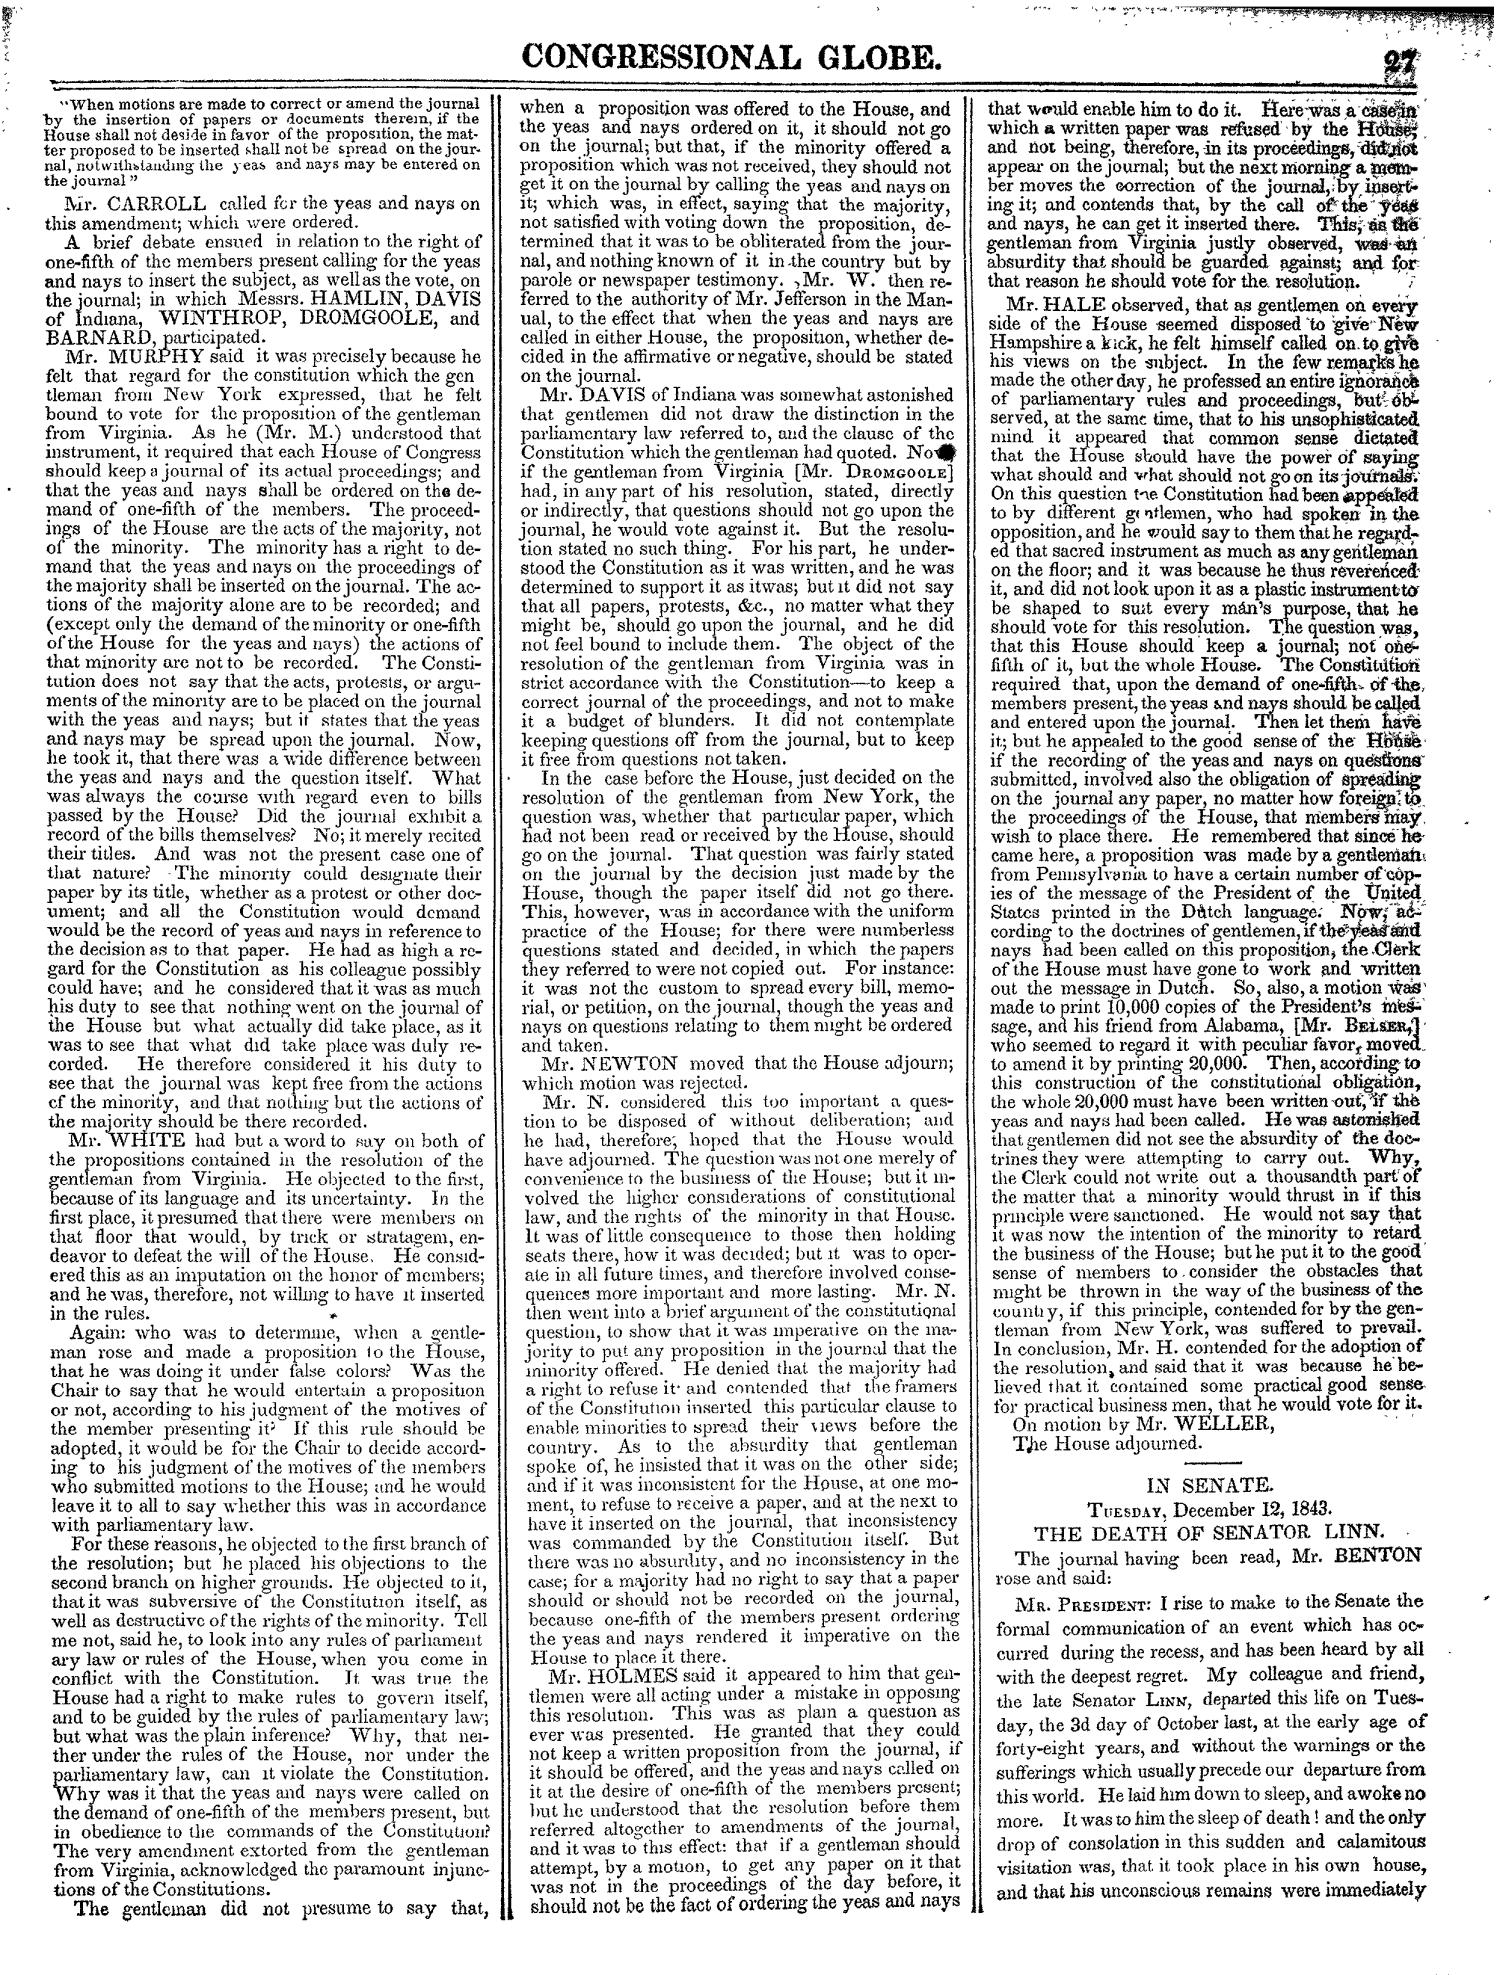 The Congressional Globe, Volume 13, Part 1: Twenty-Eighth Congress, First Session                                                                                                      27